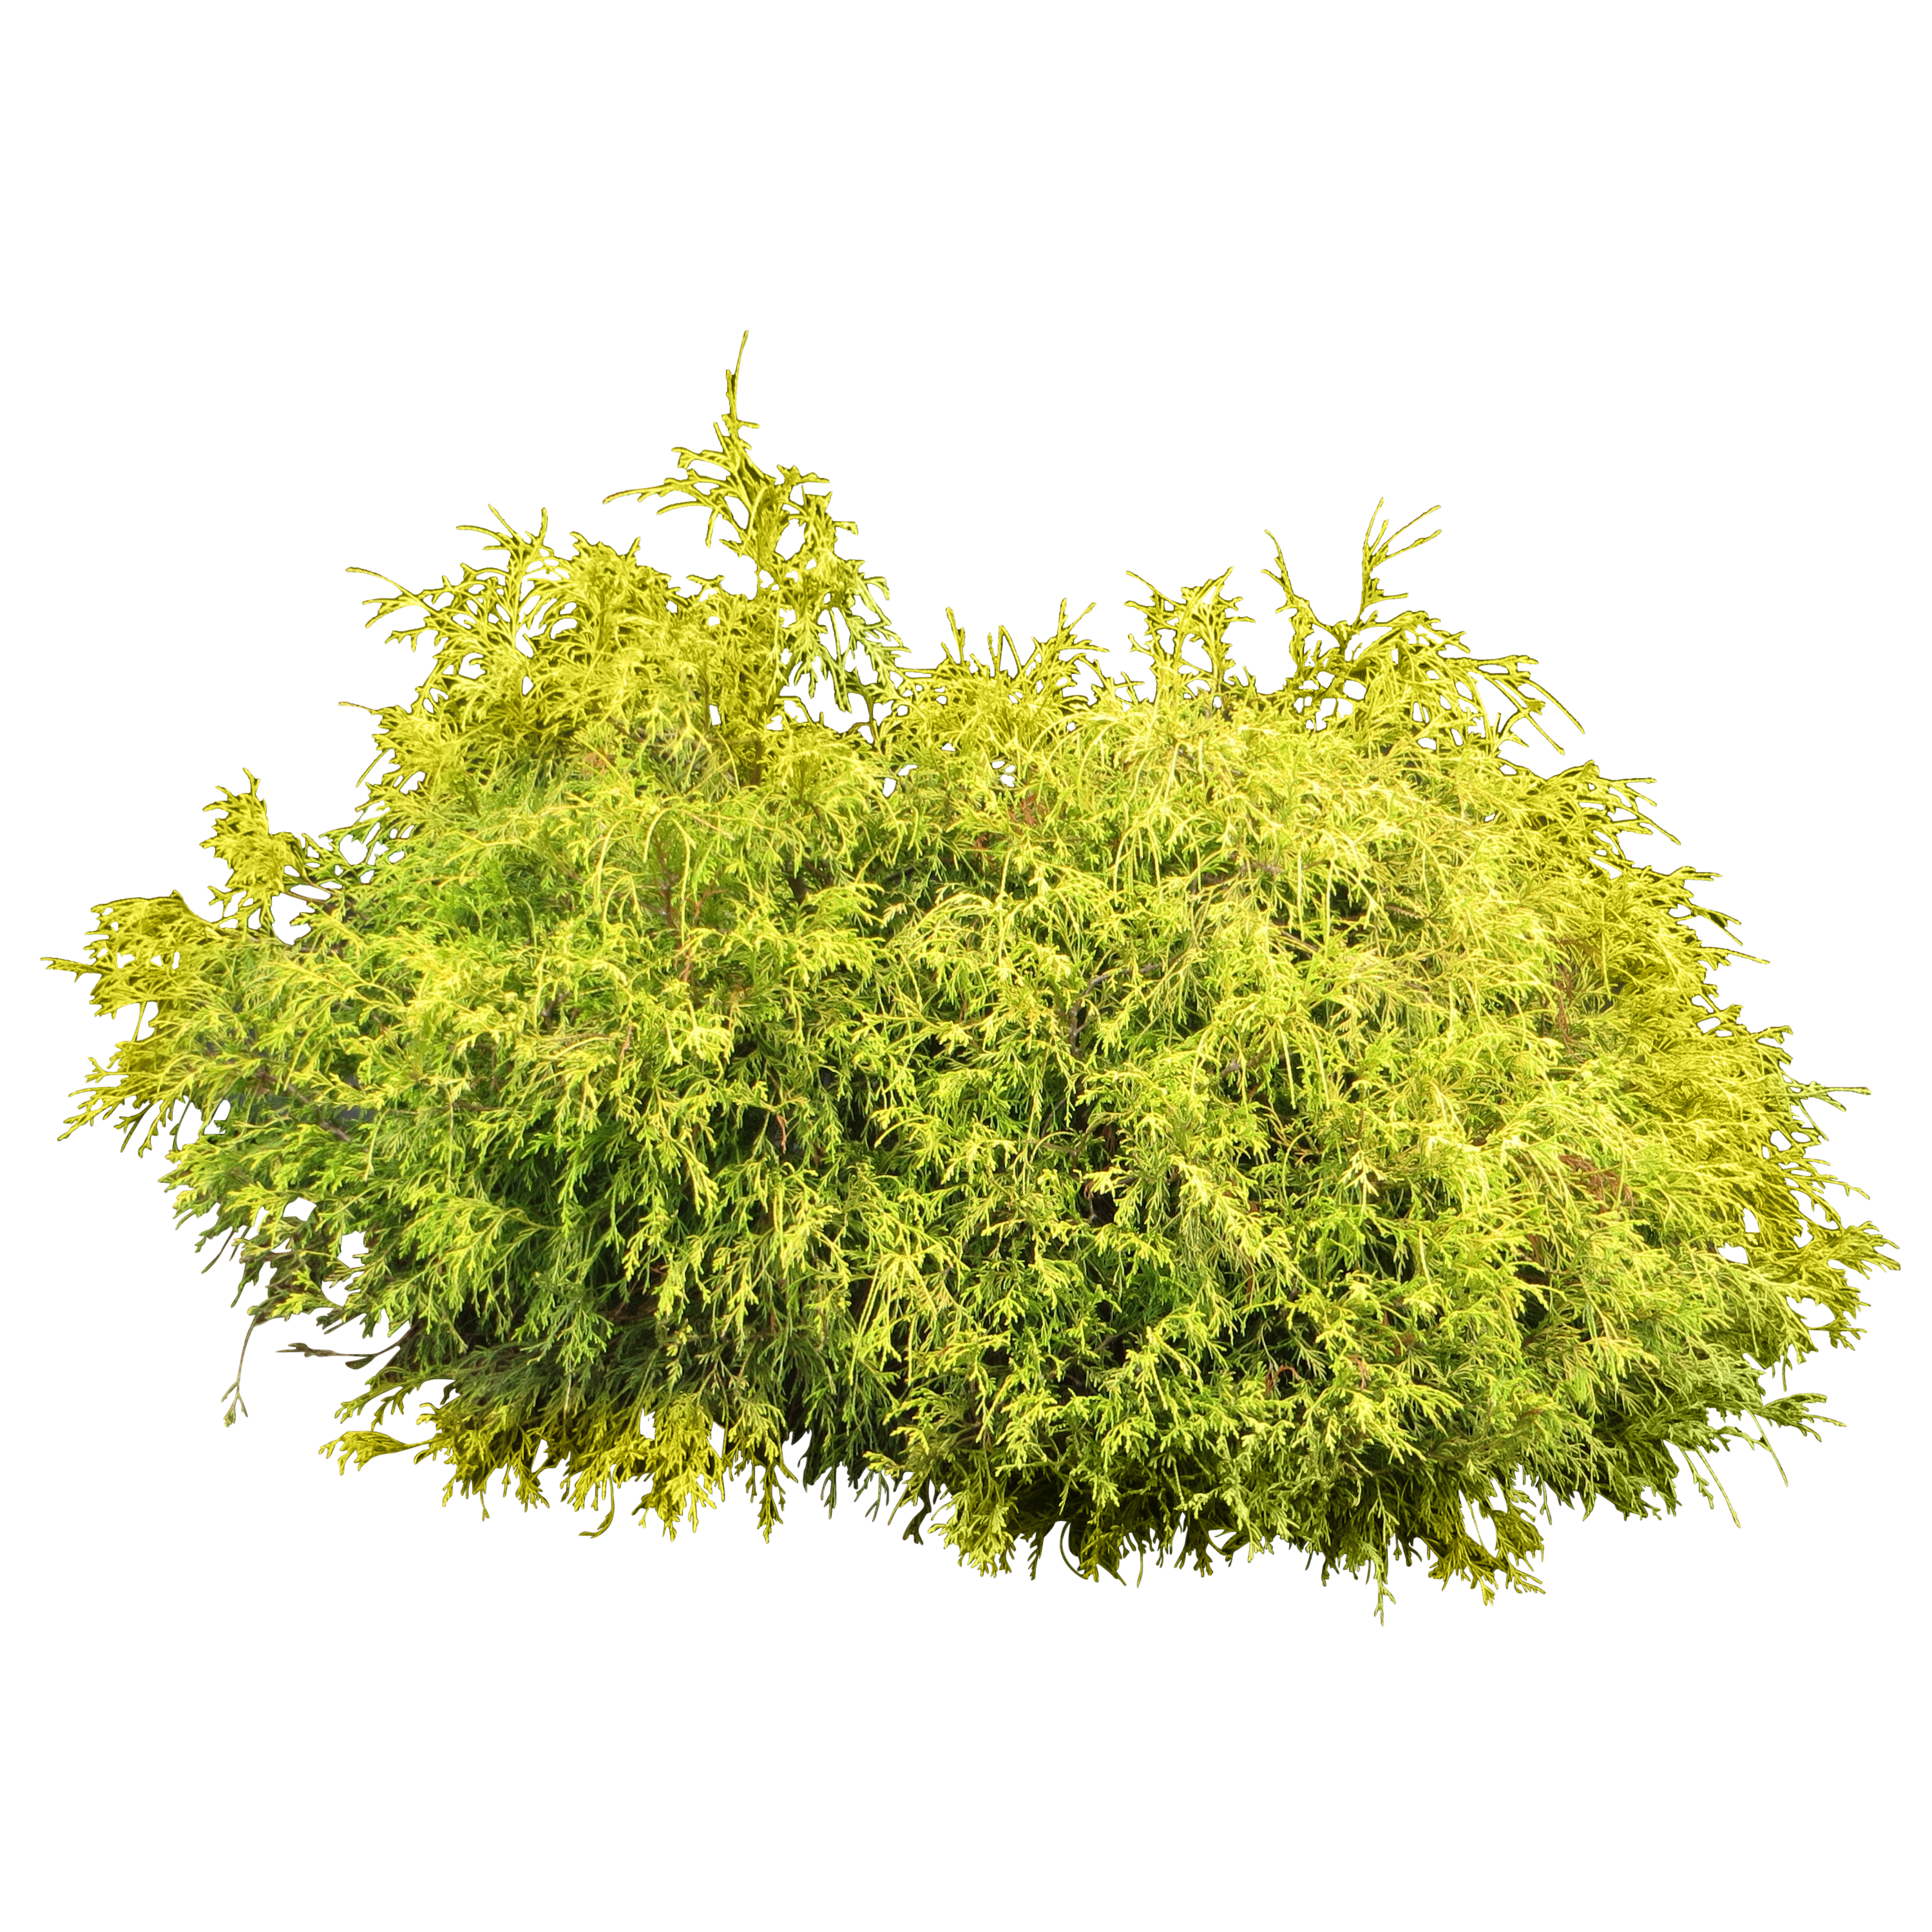 Shrubs silhouette png. Pin by chi kong